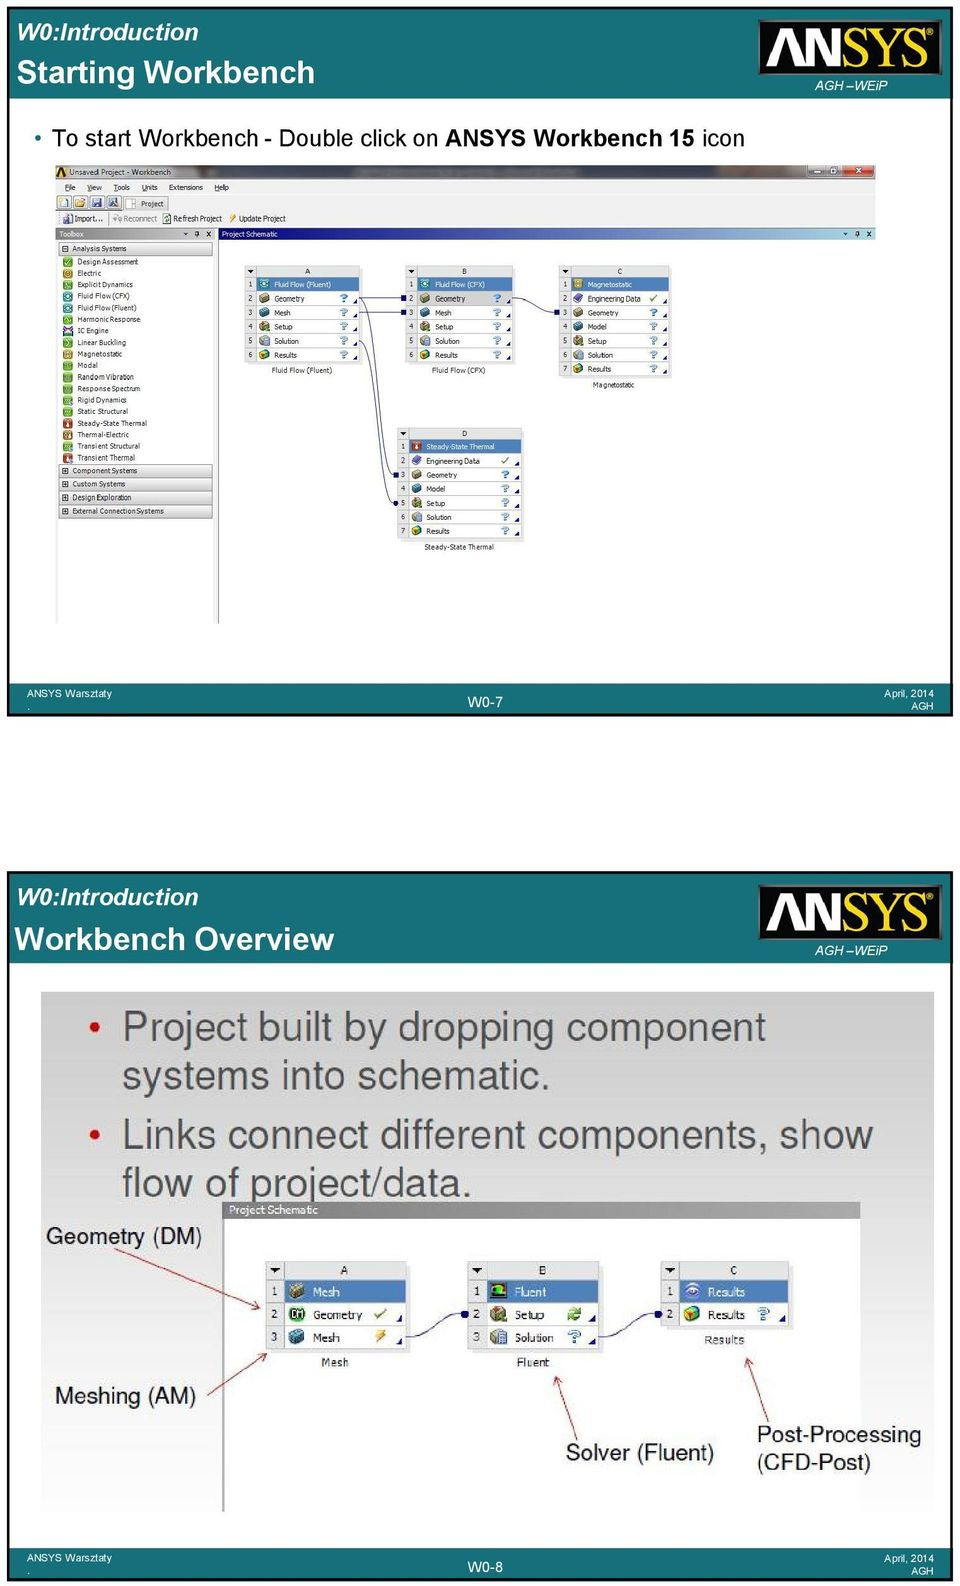 click on ANSYS Workbench 15